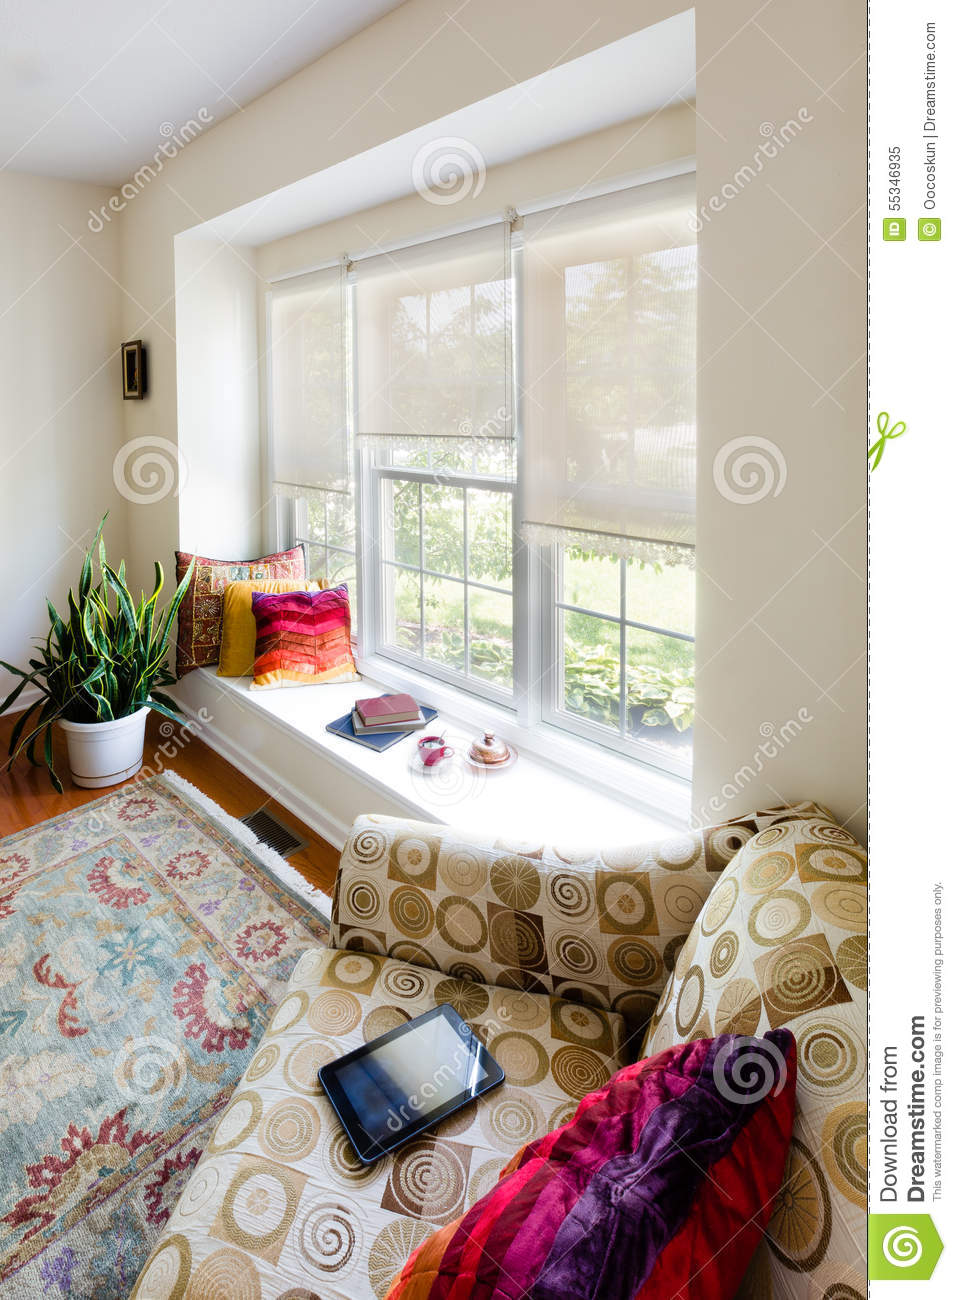 Architectural Home Living Room Interior Design Stock Image - Image ...